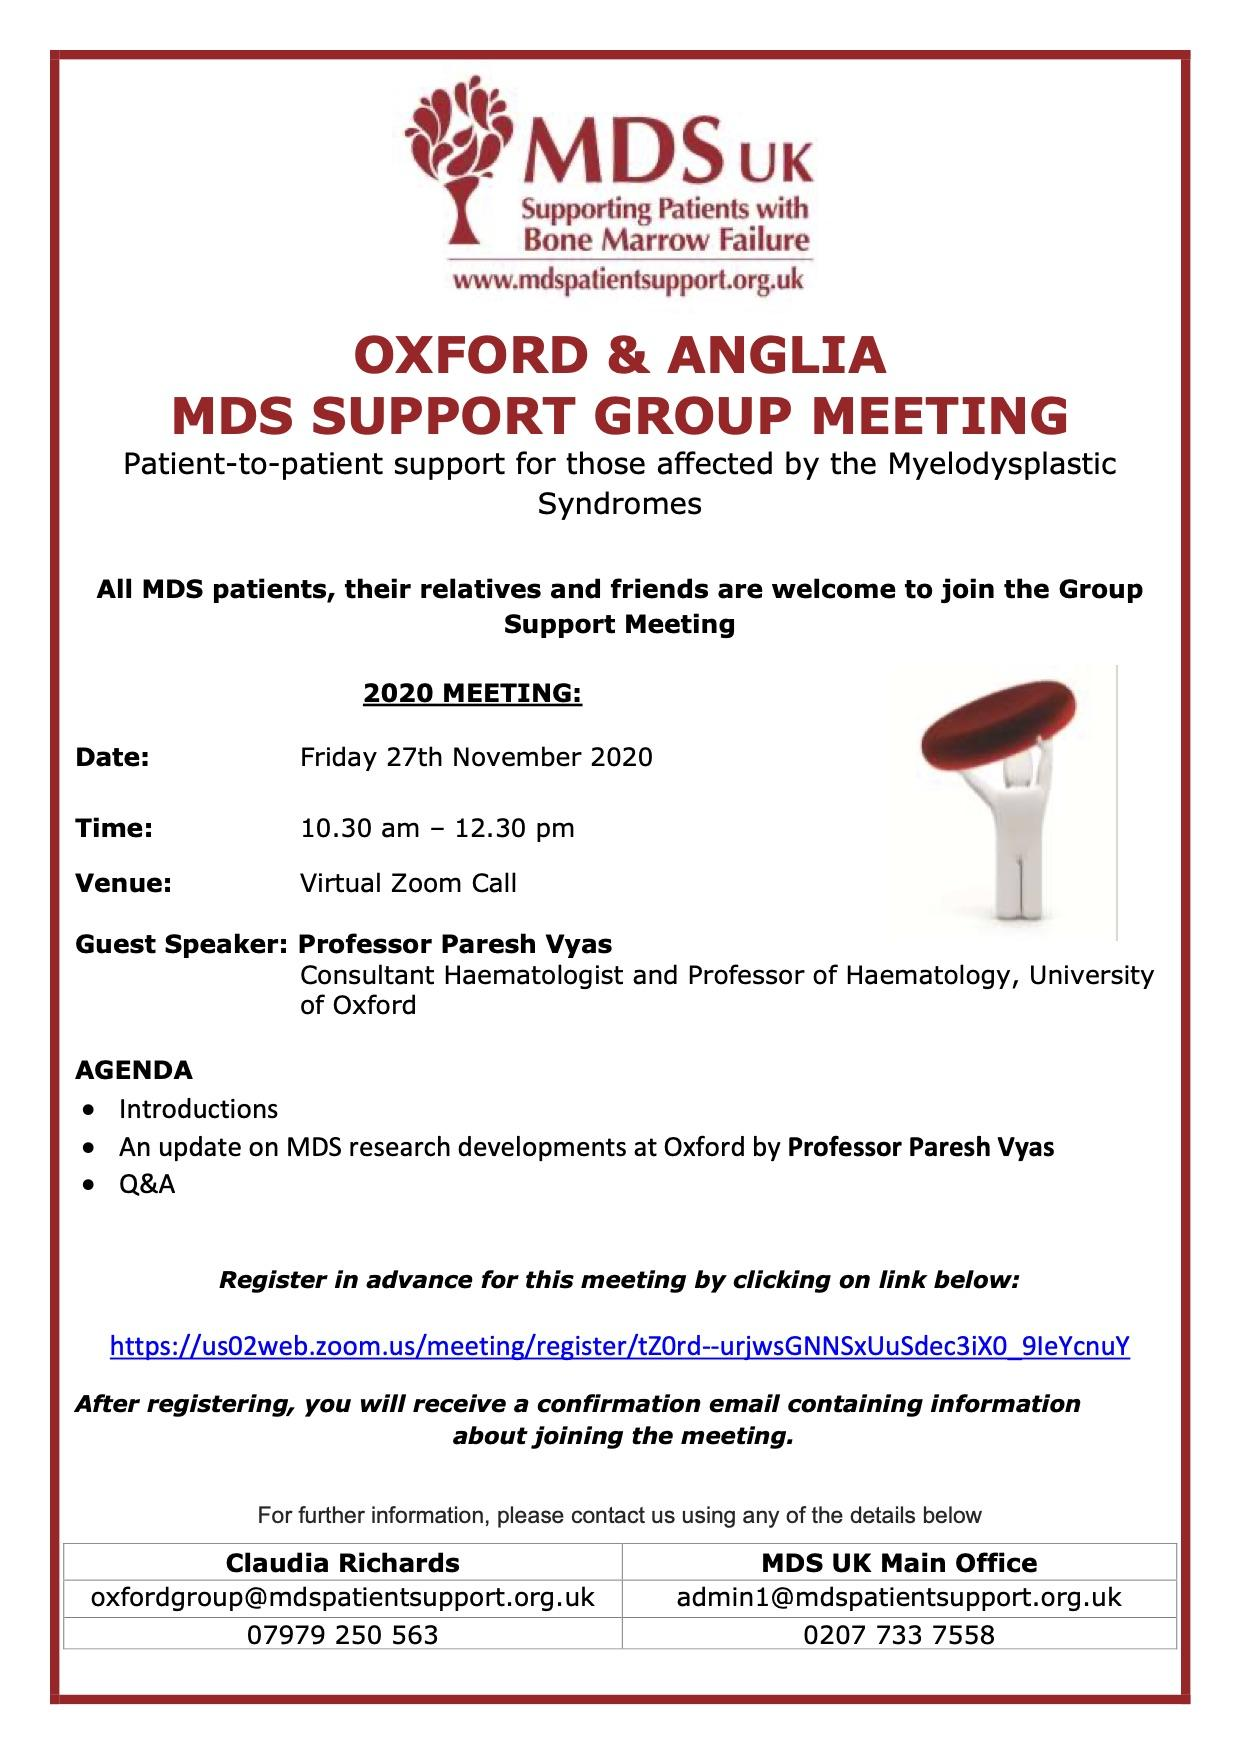 Oxford and Anglia Support Group - 2020 virtual meeting